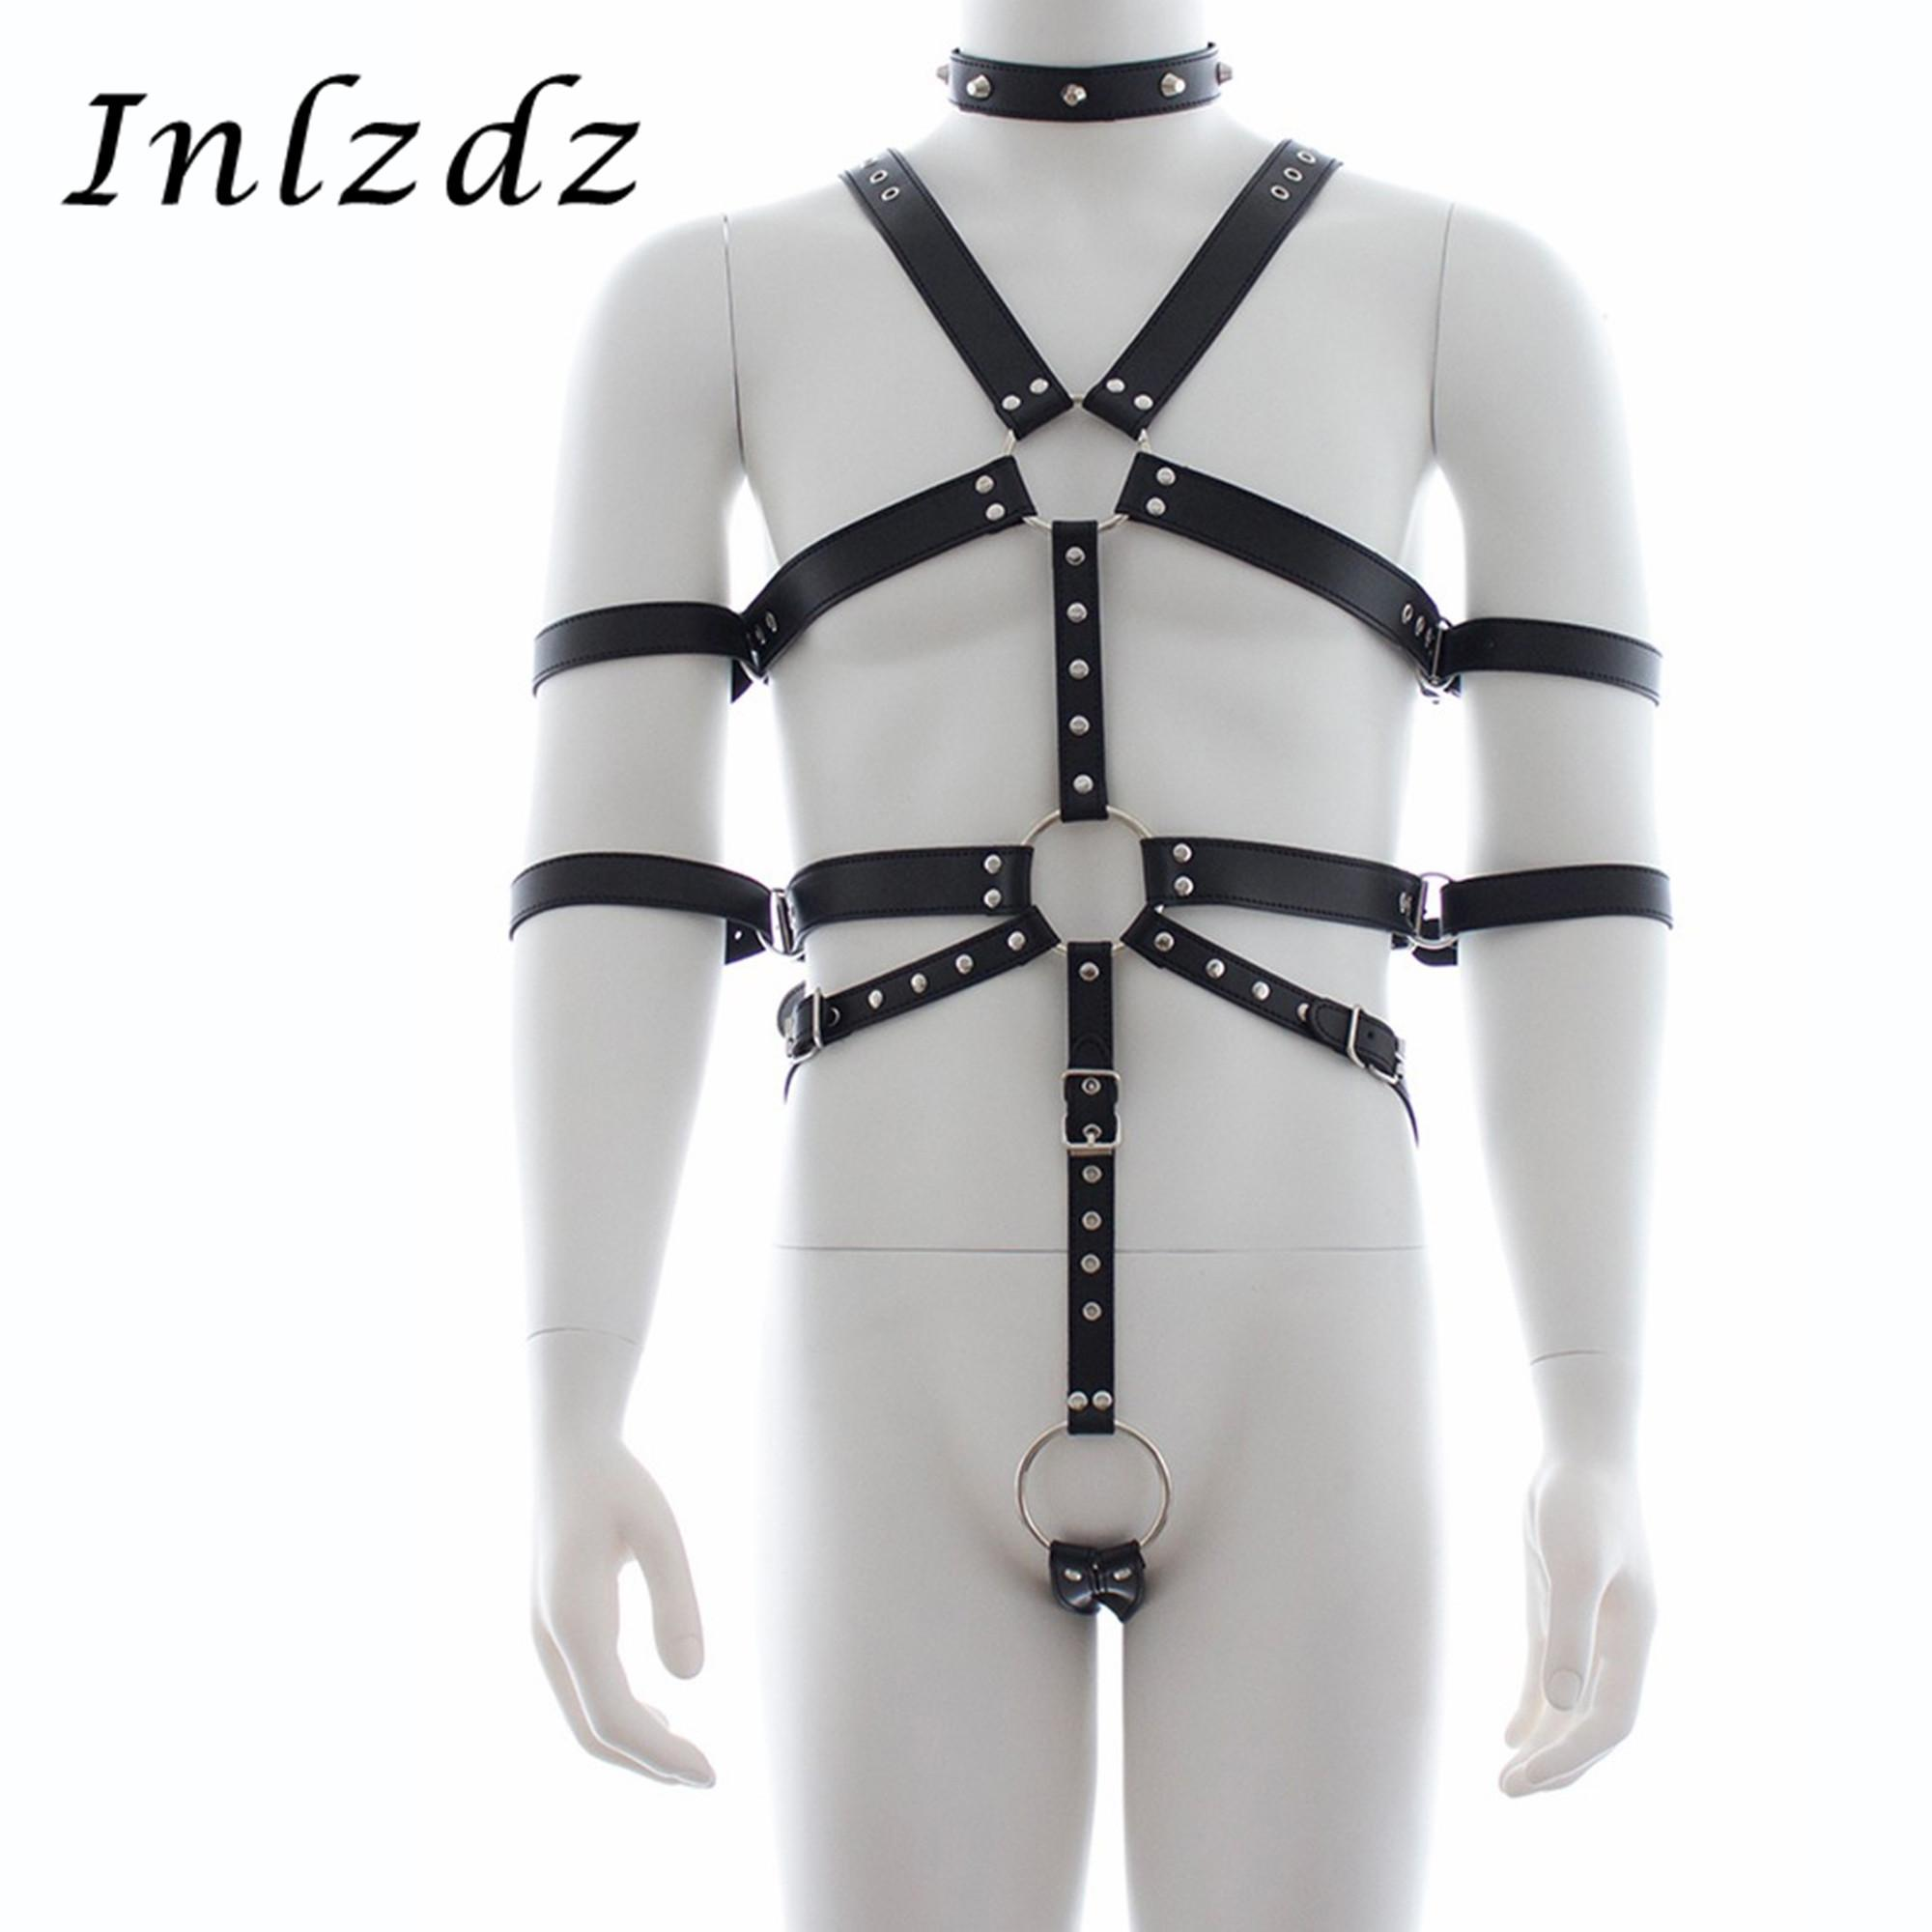 Mens Pu Leather Sexy Restraint Set Gay Chest Harness Awaist Straps Lingerie Sex Costume Full Bodysuit